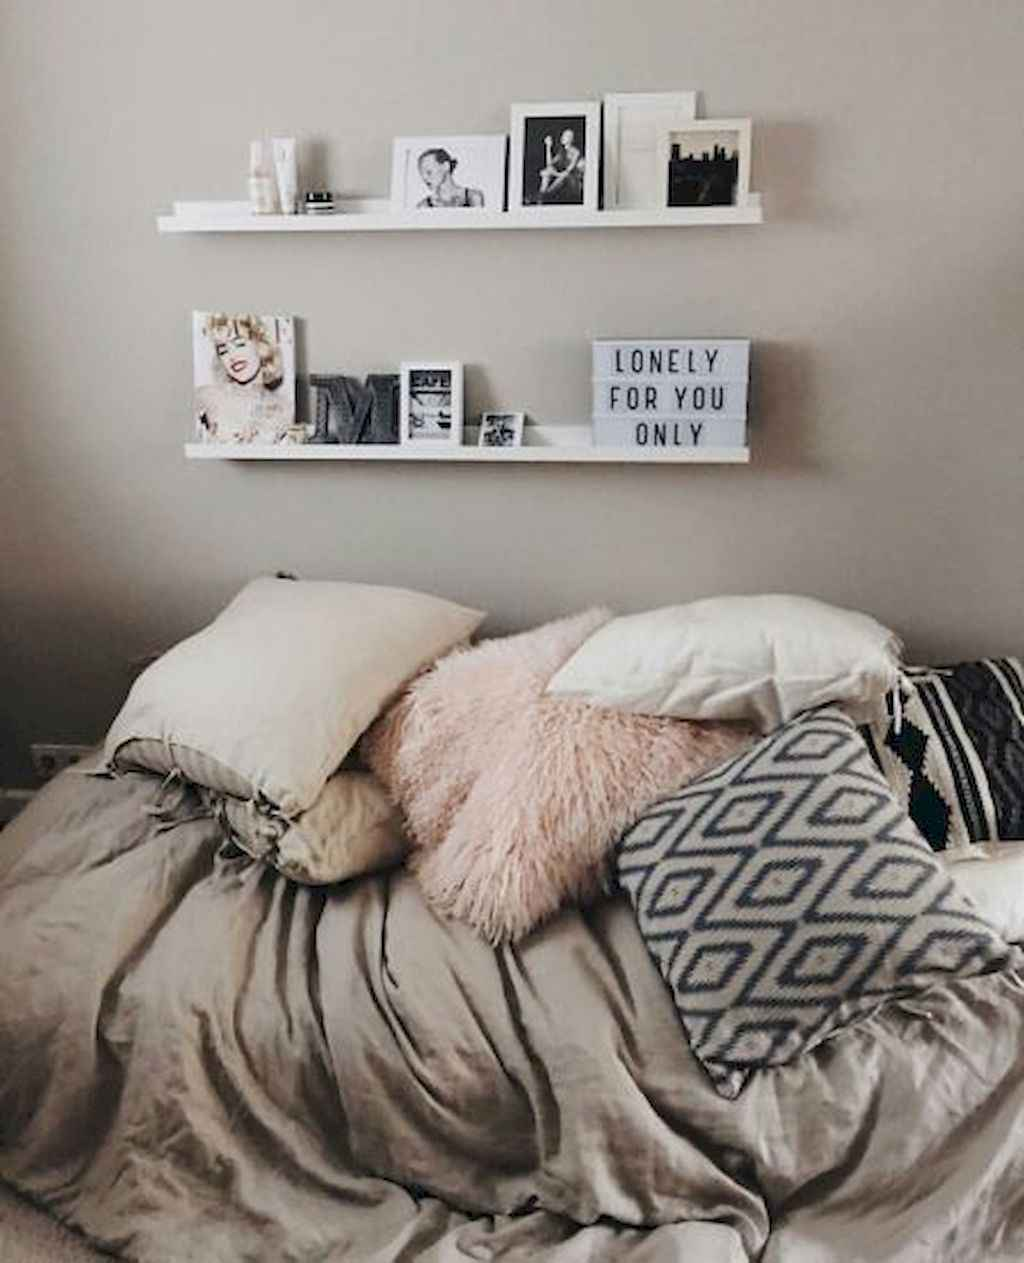 Clever college apartment decorating ideas on a budget (28)